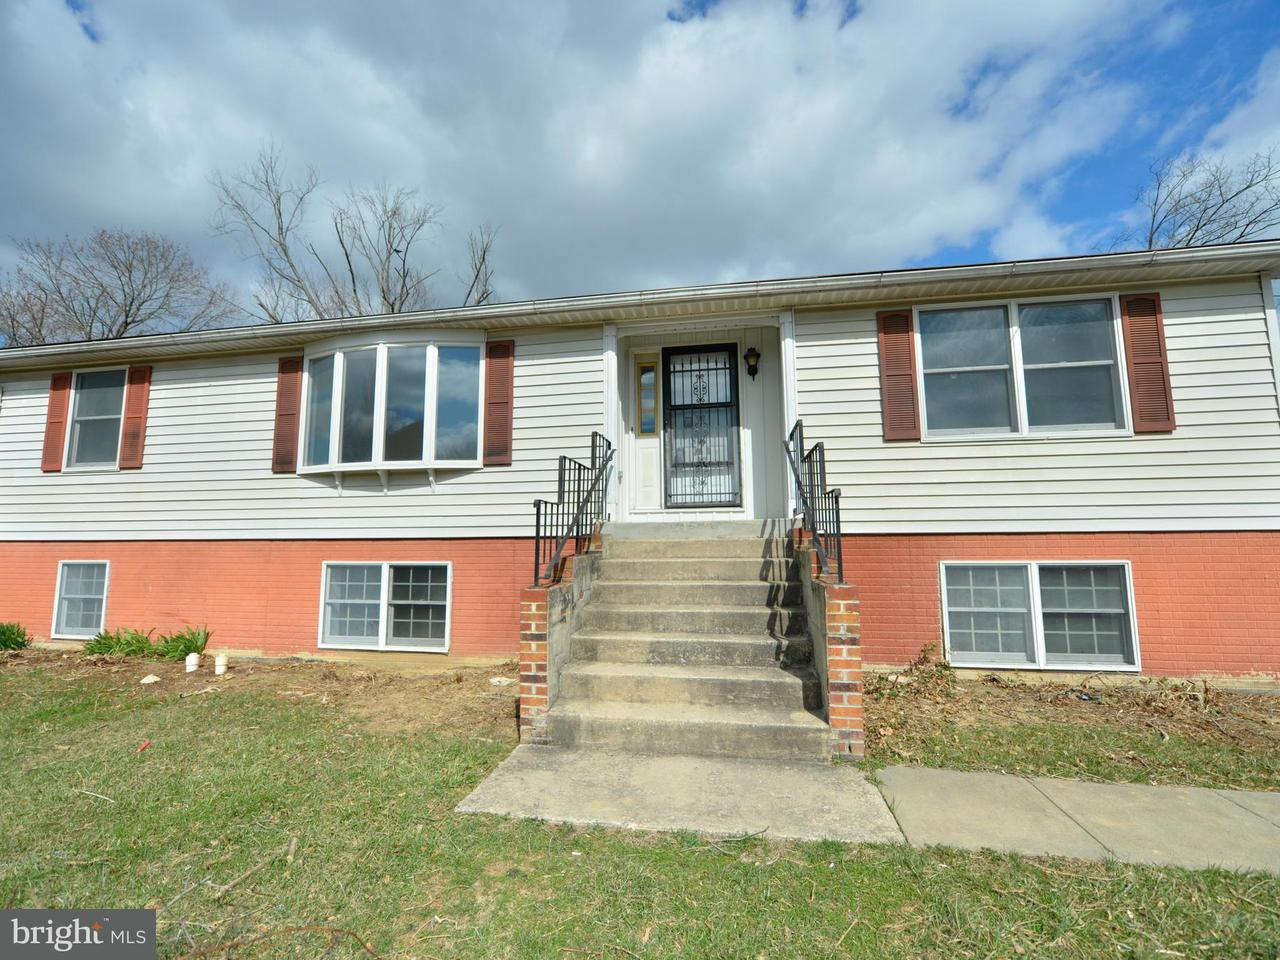 Other Residential for Rent at 311 11th Street #a Purcellville, Virginia 20132 United States